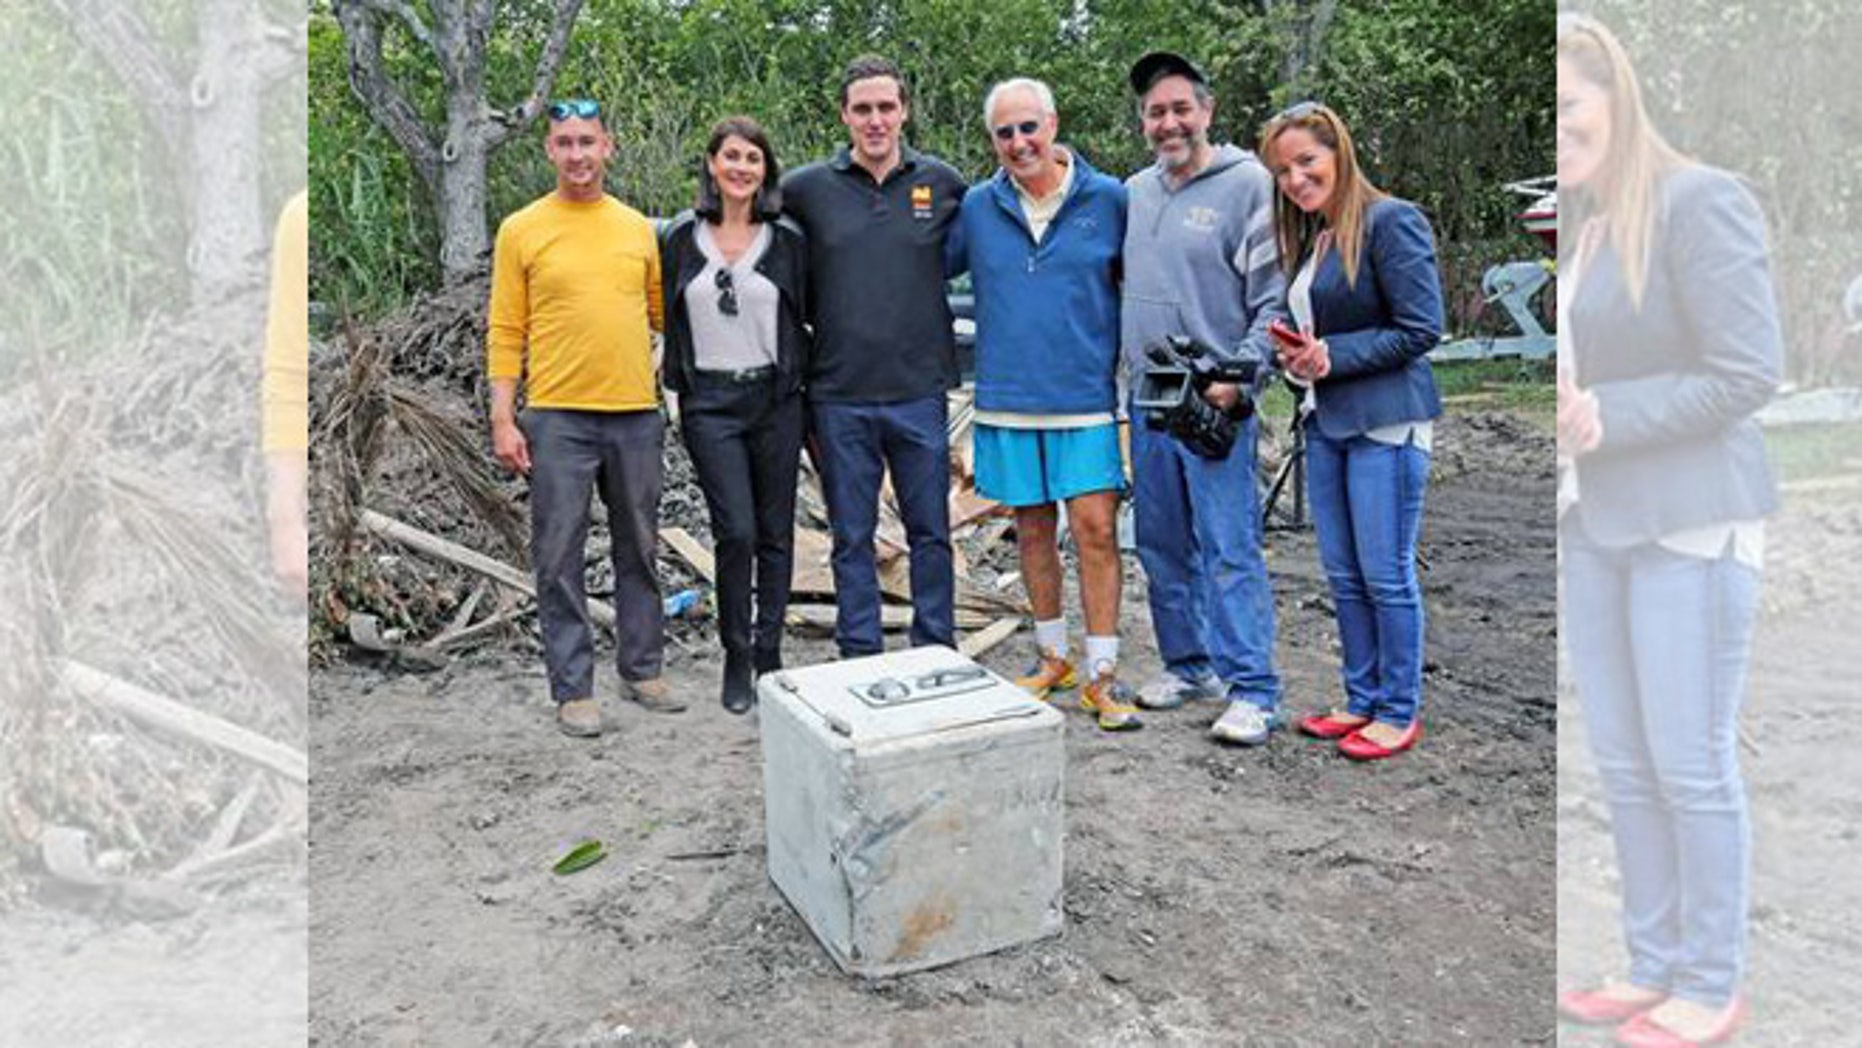 Pablo Escobar's safe at the feet of its new owner, Christian de Berdouare (center). (Photo: Used with permission of Christian de Berdouare)